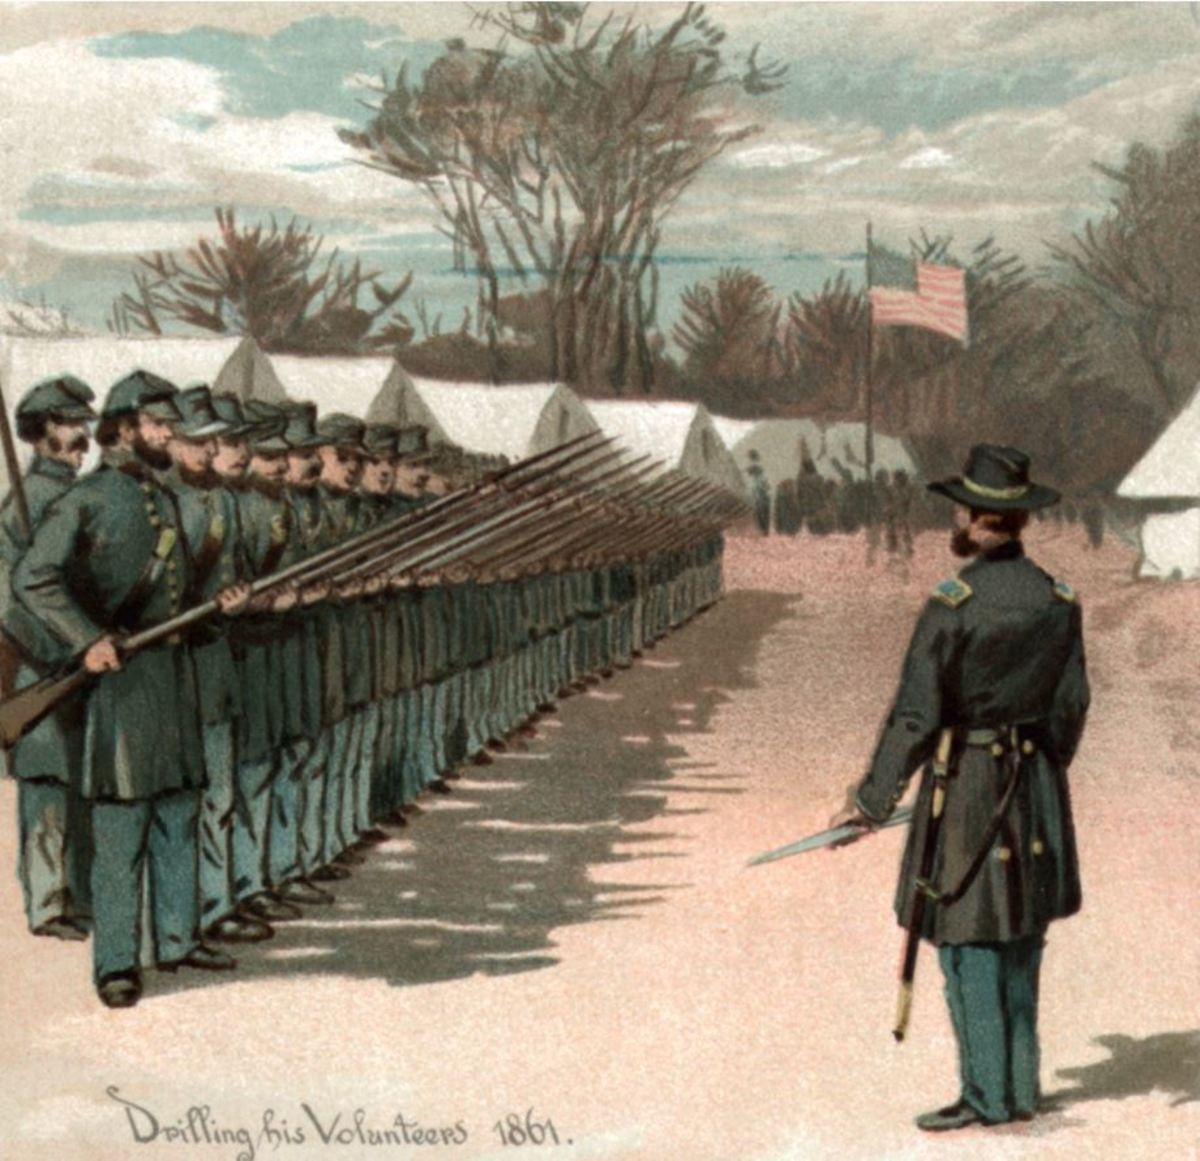 """Grant Drilling his Volunteers, 1861."" Detail from an 1885 engraving, ""Grant from West Point to Appomattox."""